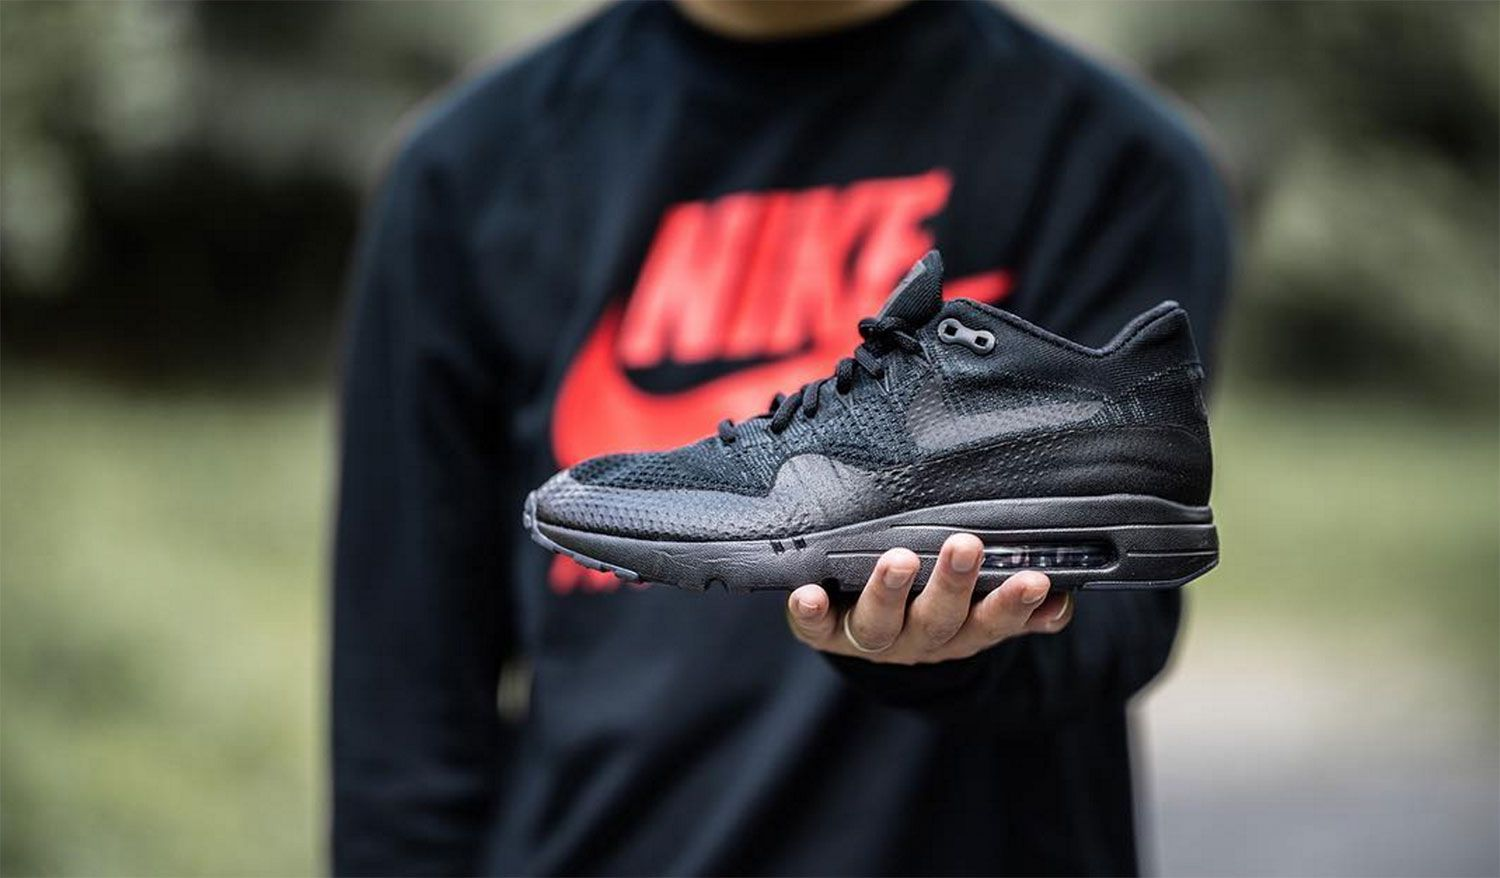 the best attitude 8d985 fb2d5 The Nike Air Max 1 Ultra Flyknit Triple Black Is an Instant ...